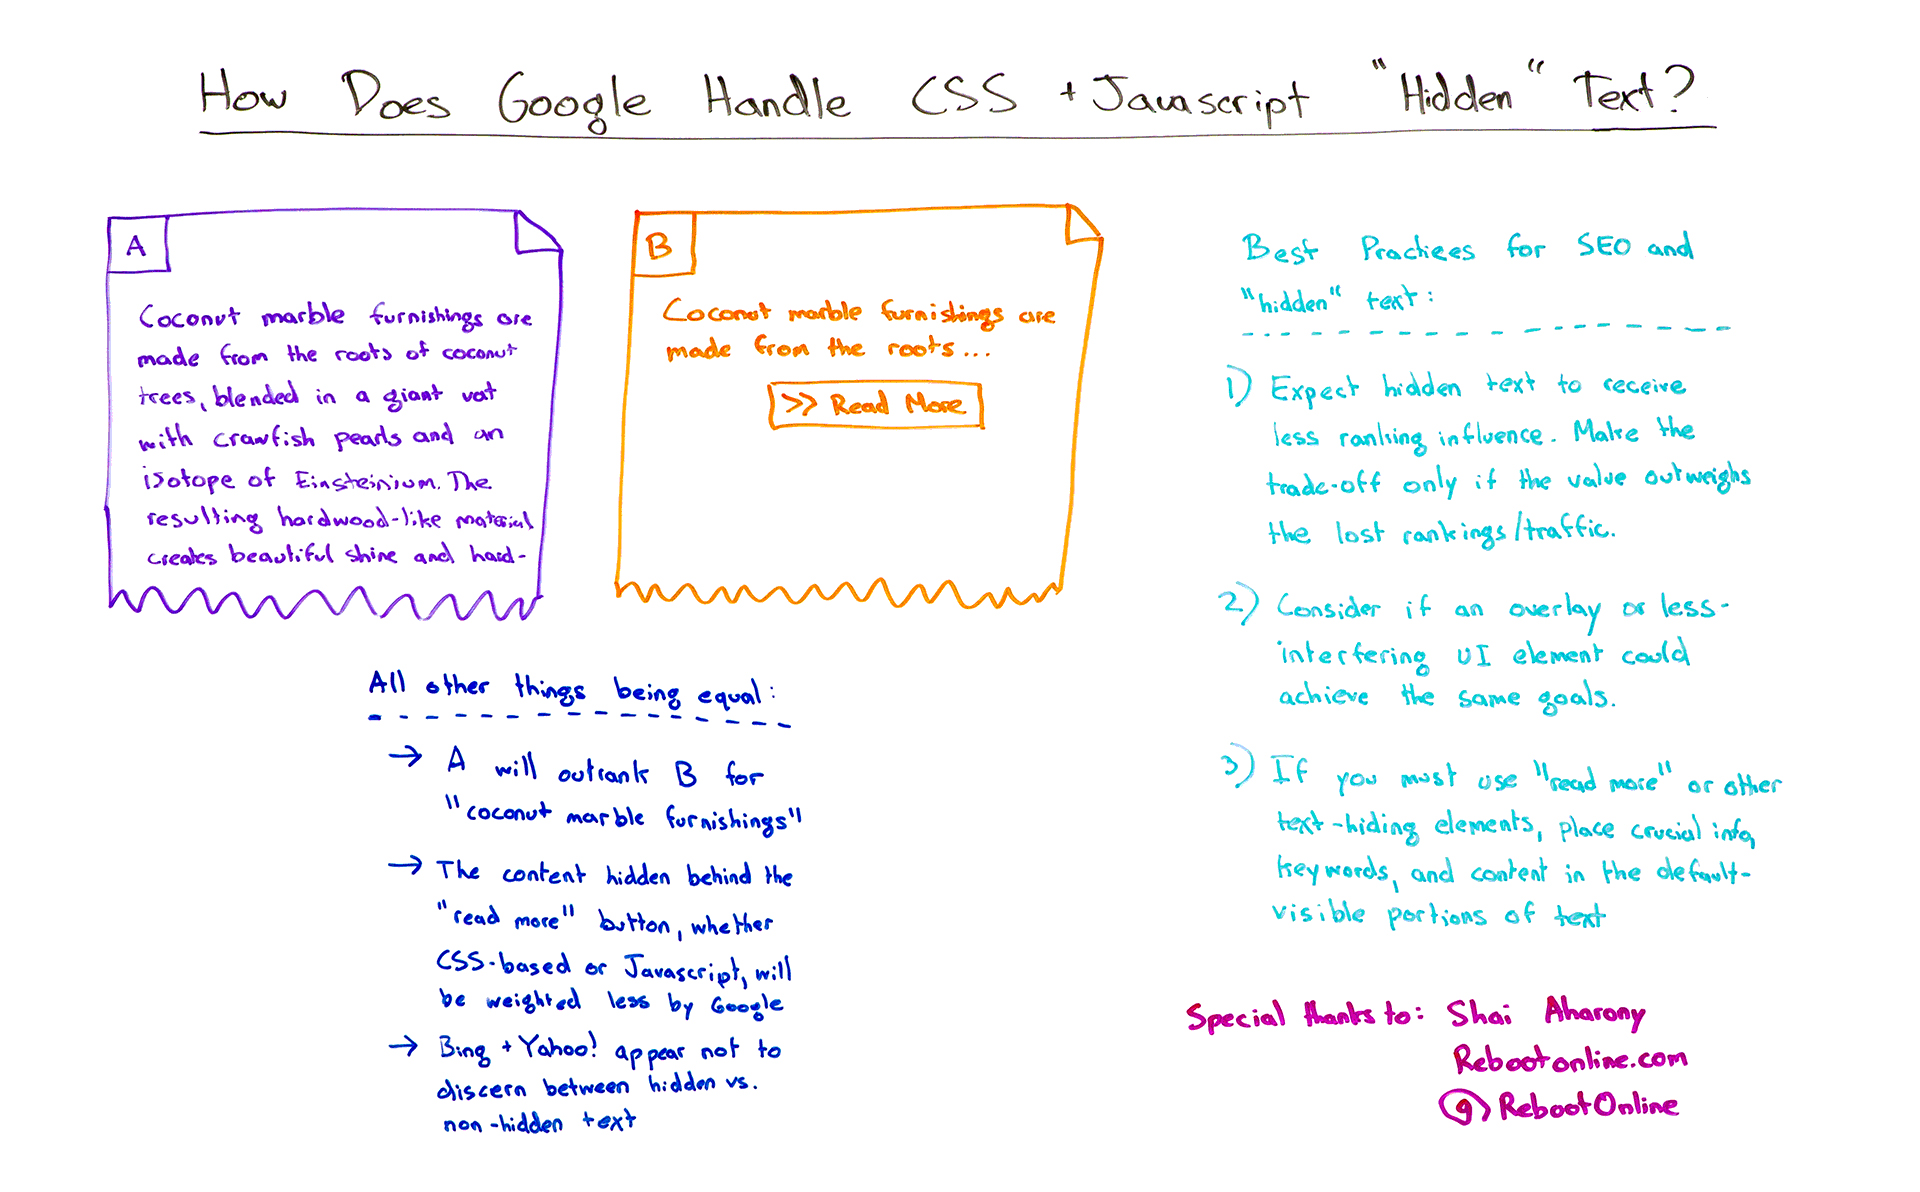 How Does Google Handle CSS + Javascript